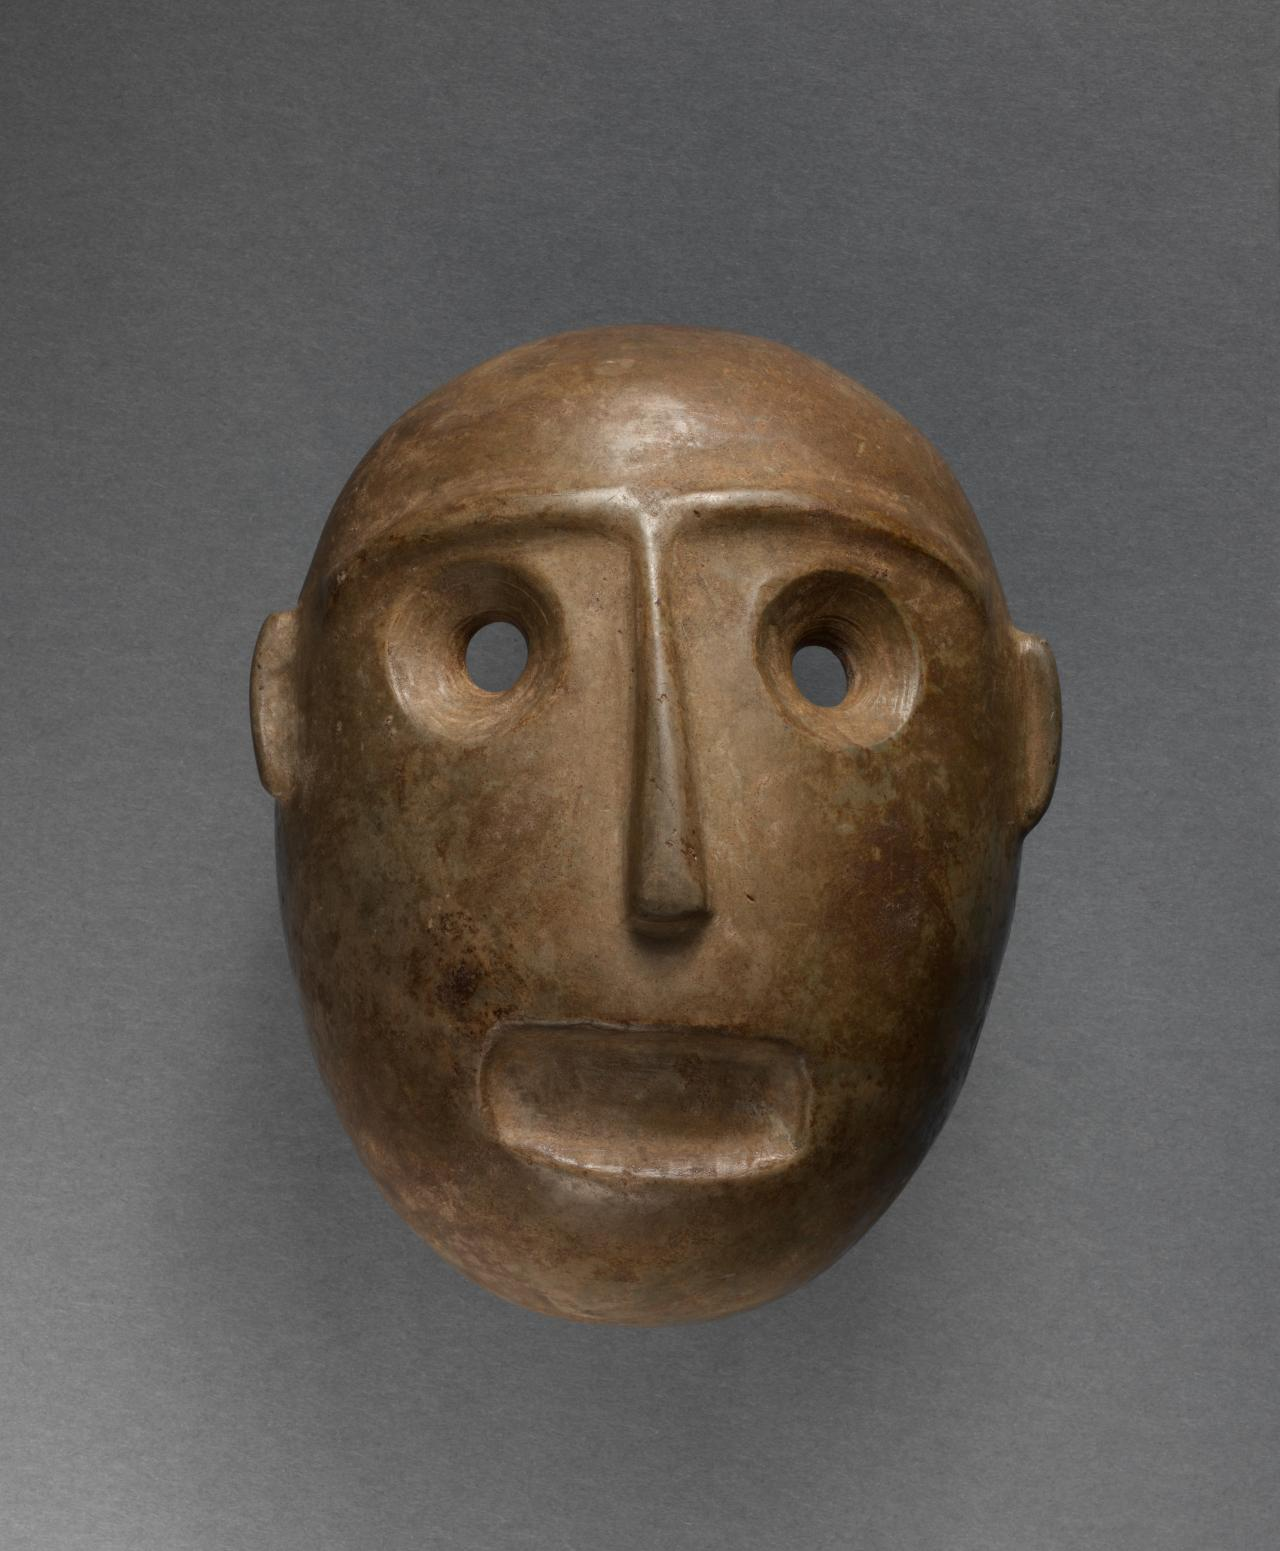 Colima, West Mexico Mask 400 BC-200 BC